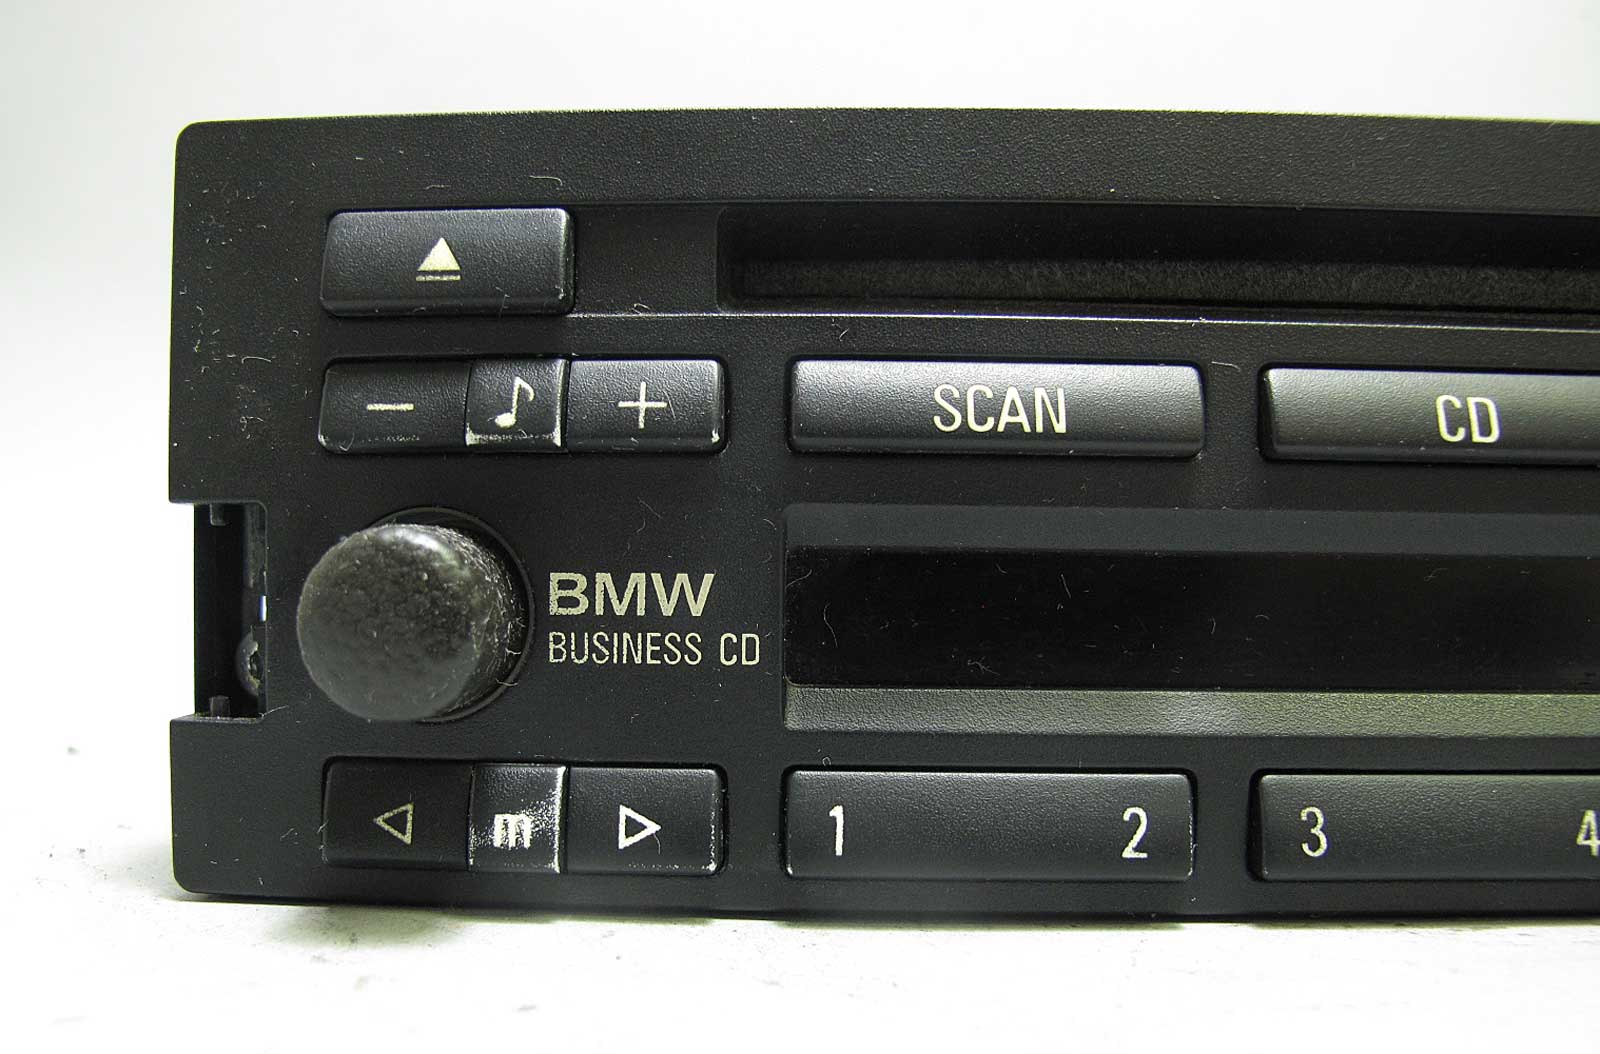 bmw e36 z3 e34 factory cd43 business cd radio headunit w. Black Bedroom Furniture Sets. Home Design Ideas